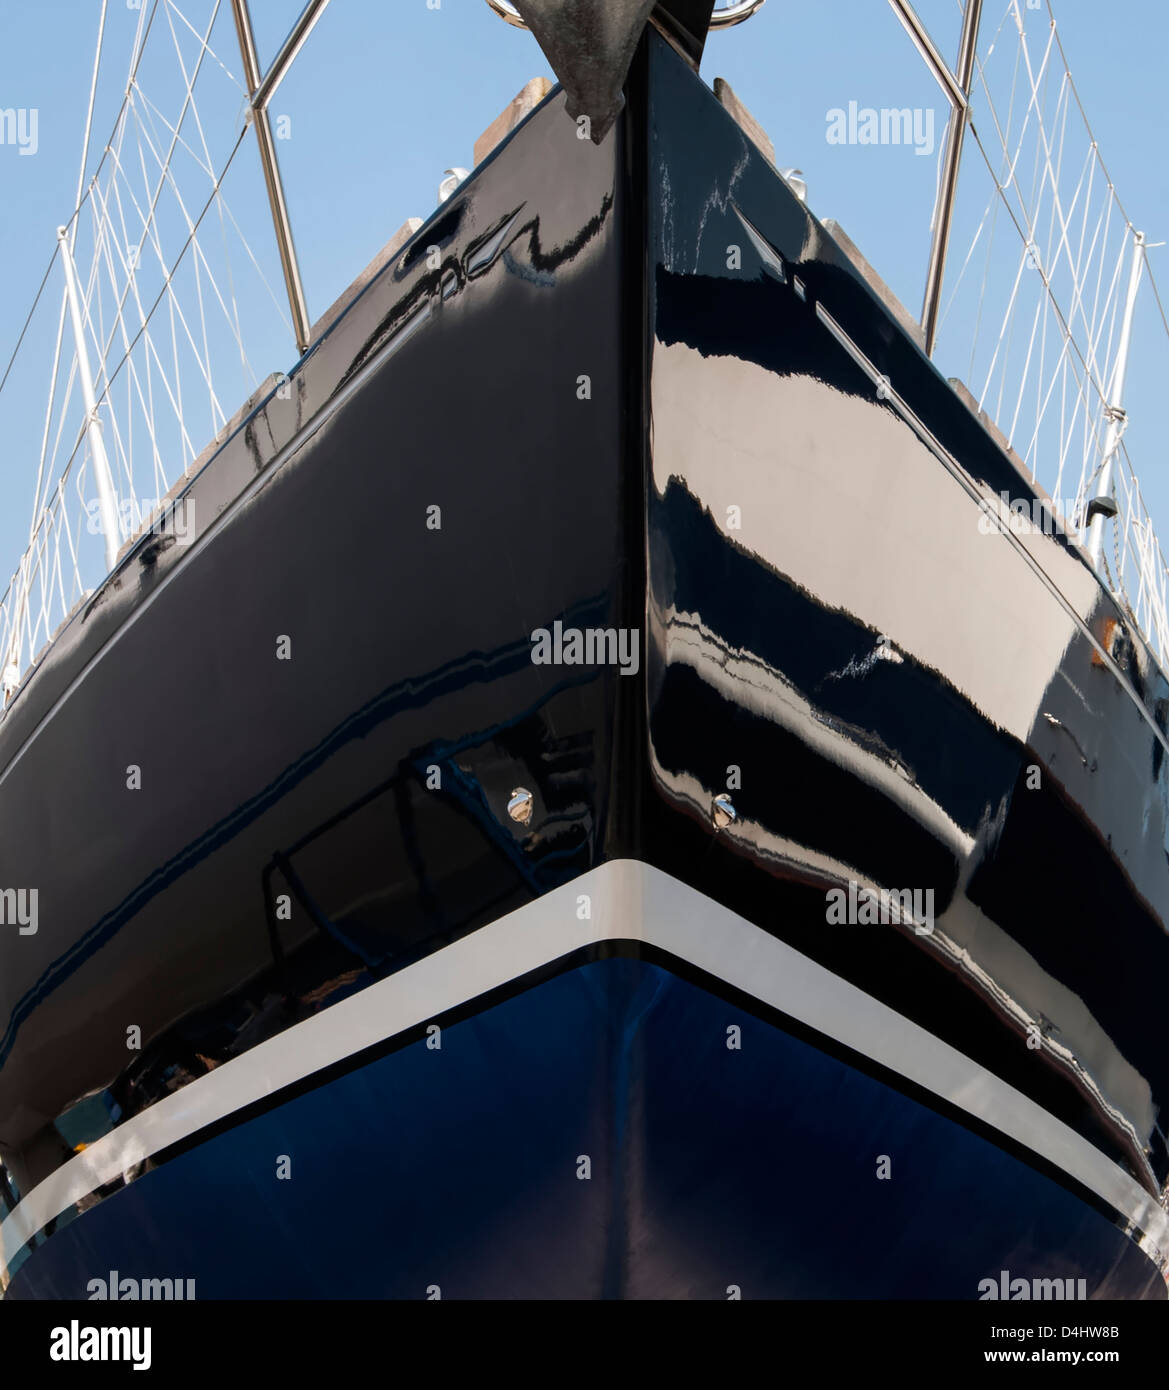 Symmetrical close-up of yacht bow in dark blue glass reinforced plastic with white waterline stripe and blue anti - Stock Image